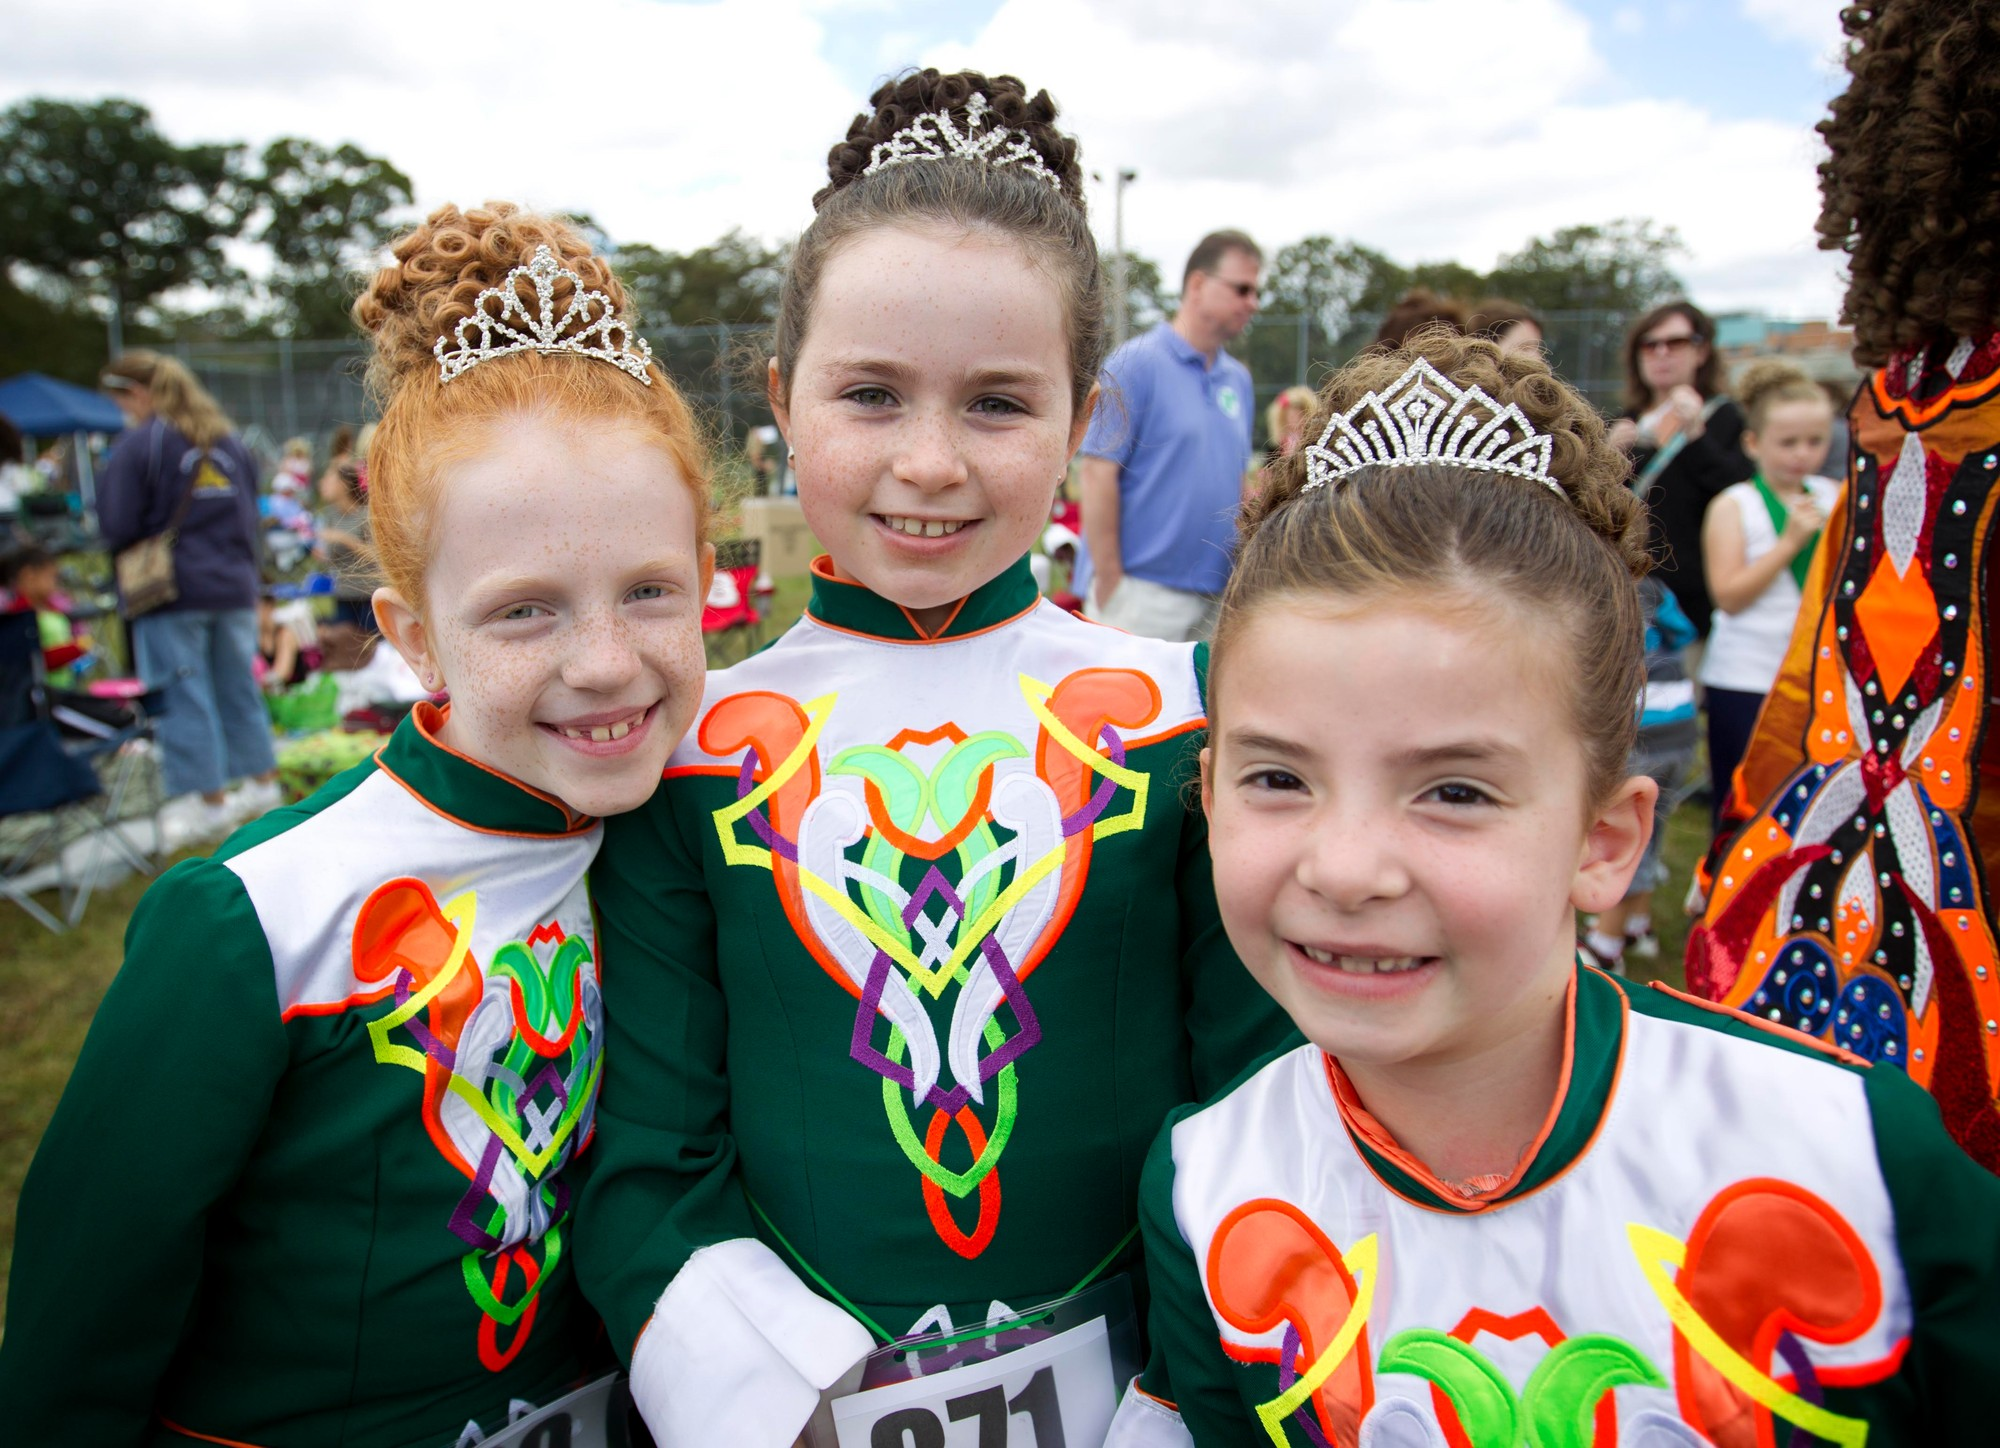 These young ladies are full of smiles as they share in the cherished traditions that are preserved and honored at the feis.